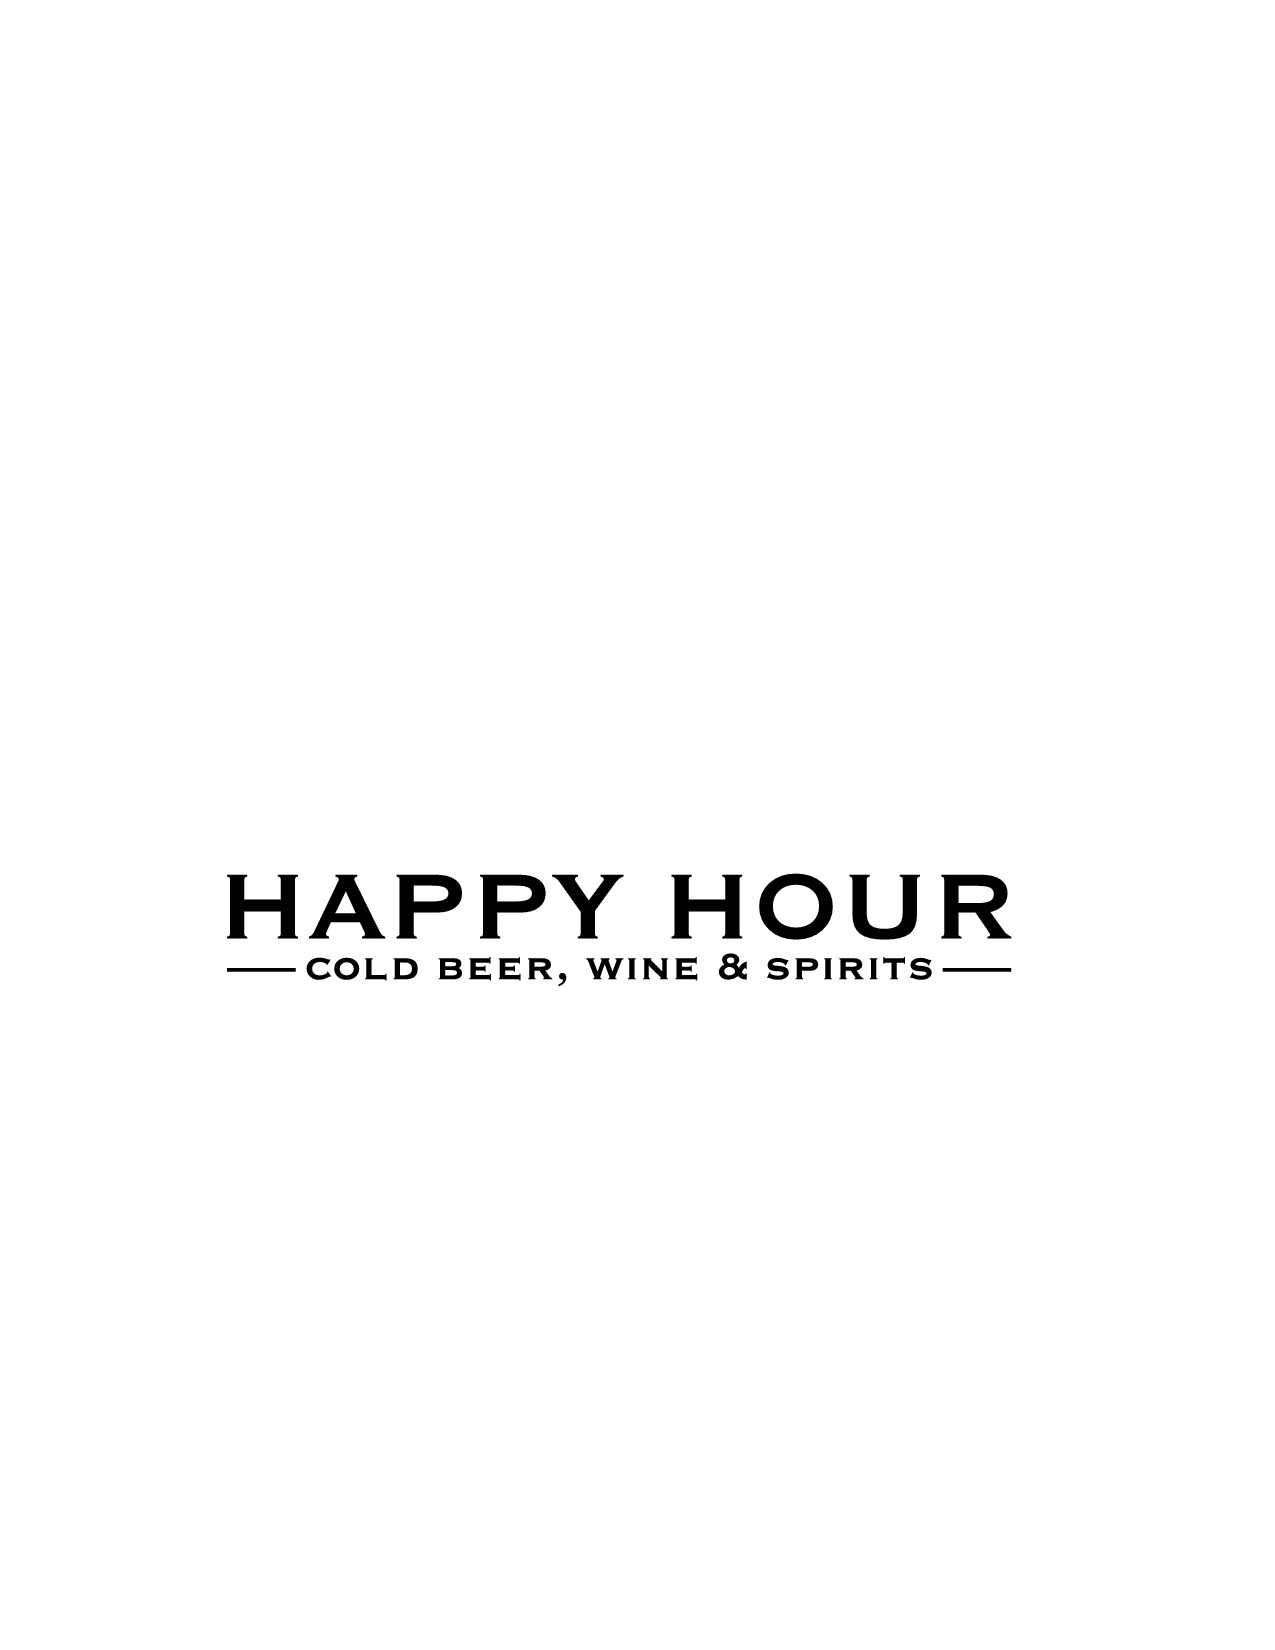 Happy Hour needs a logo with a unique twist.